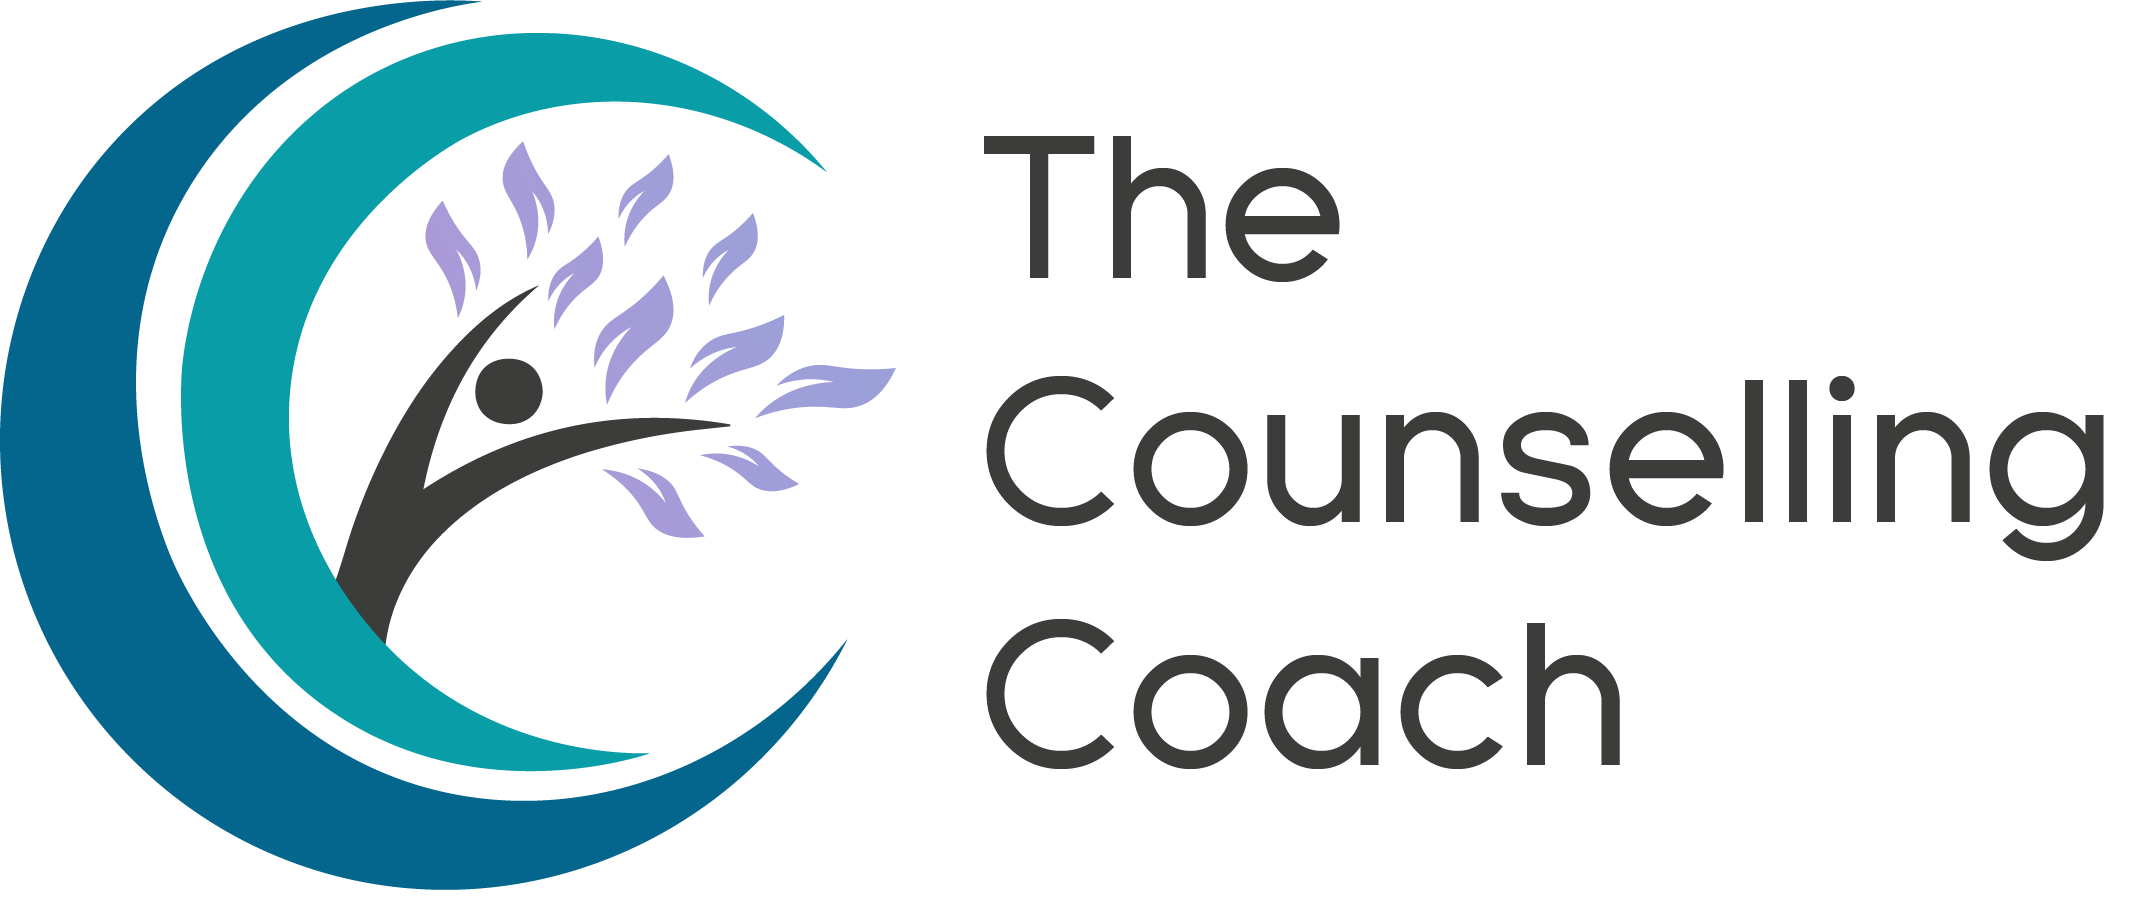 The Counselling Coach